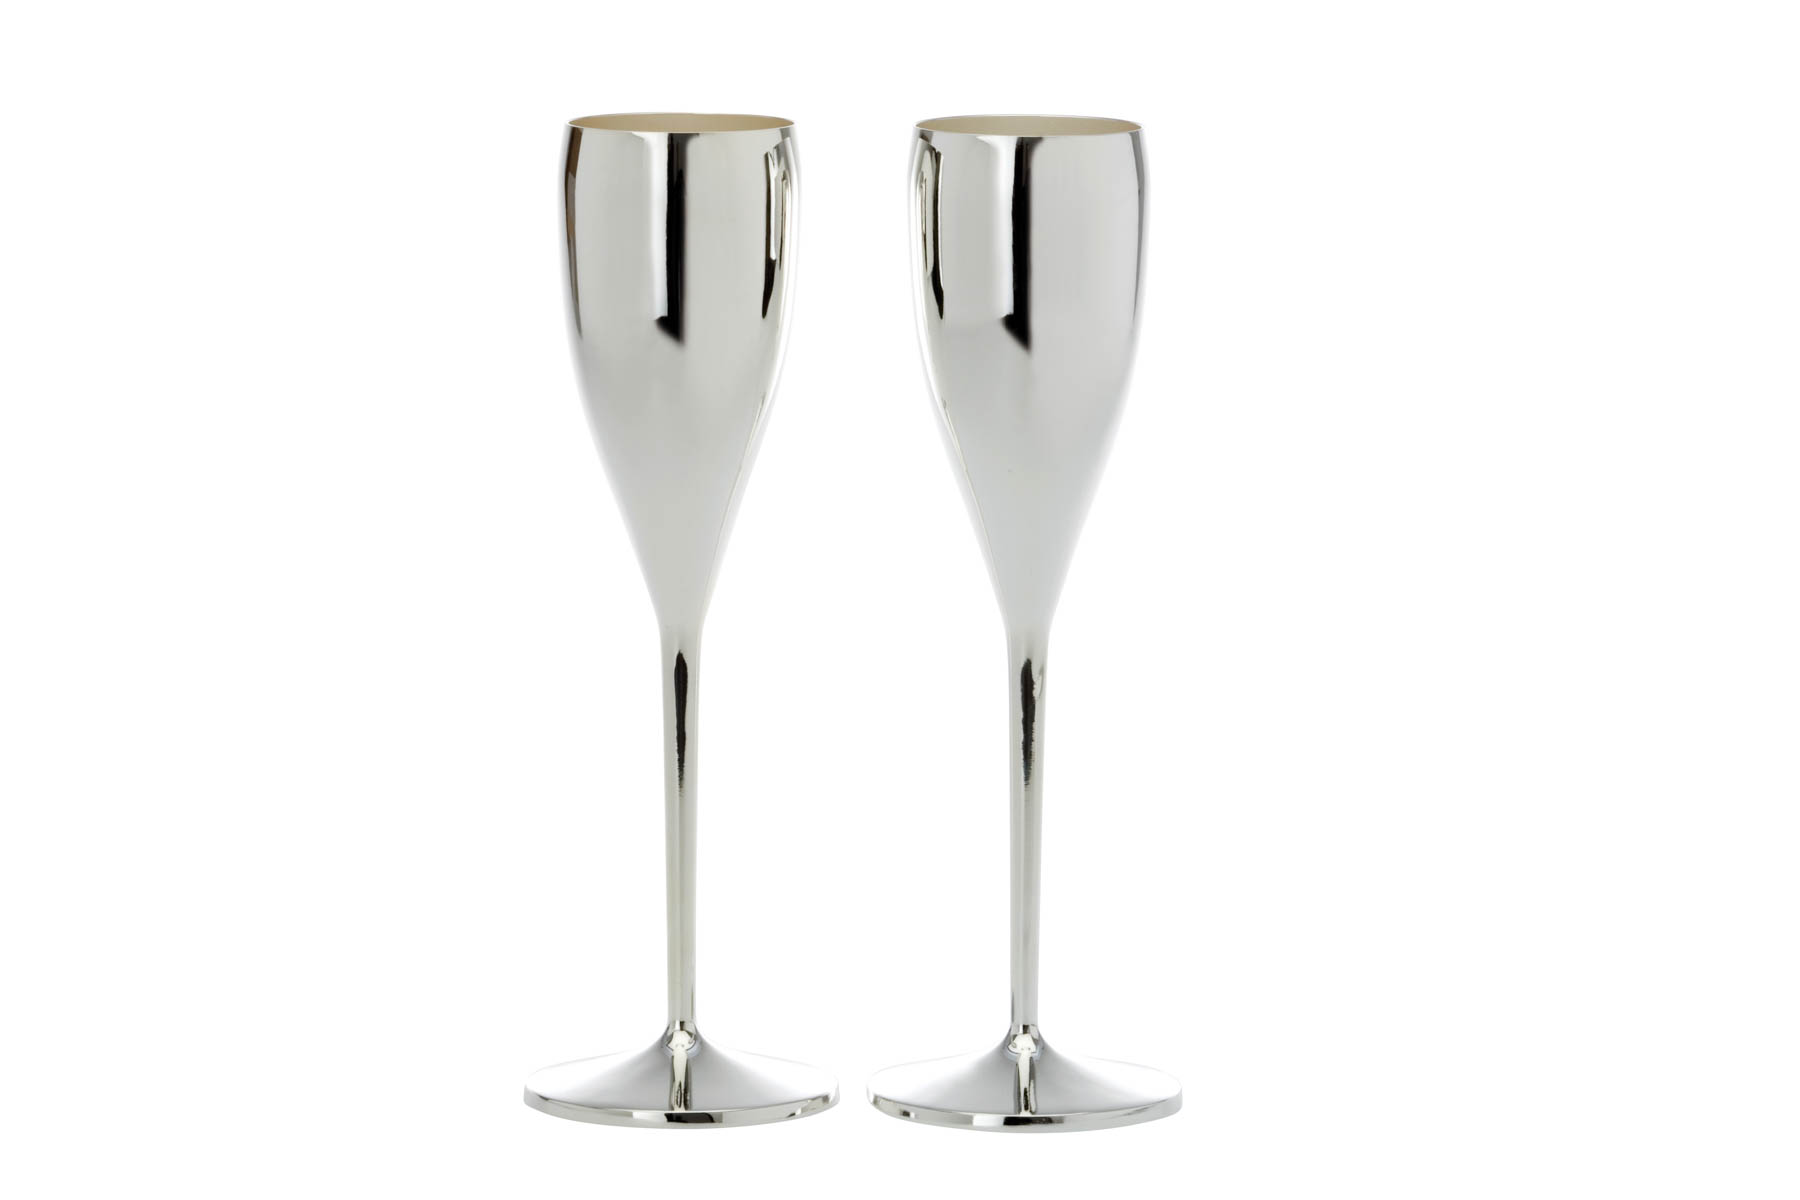 Goblet Set of 2 for Champagne